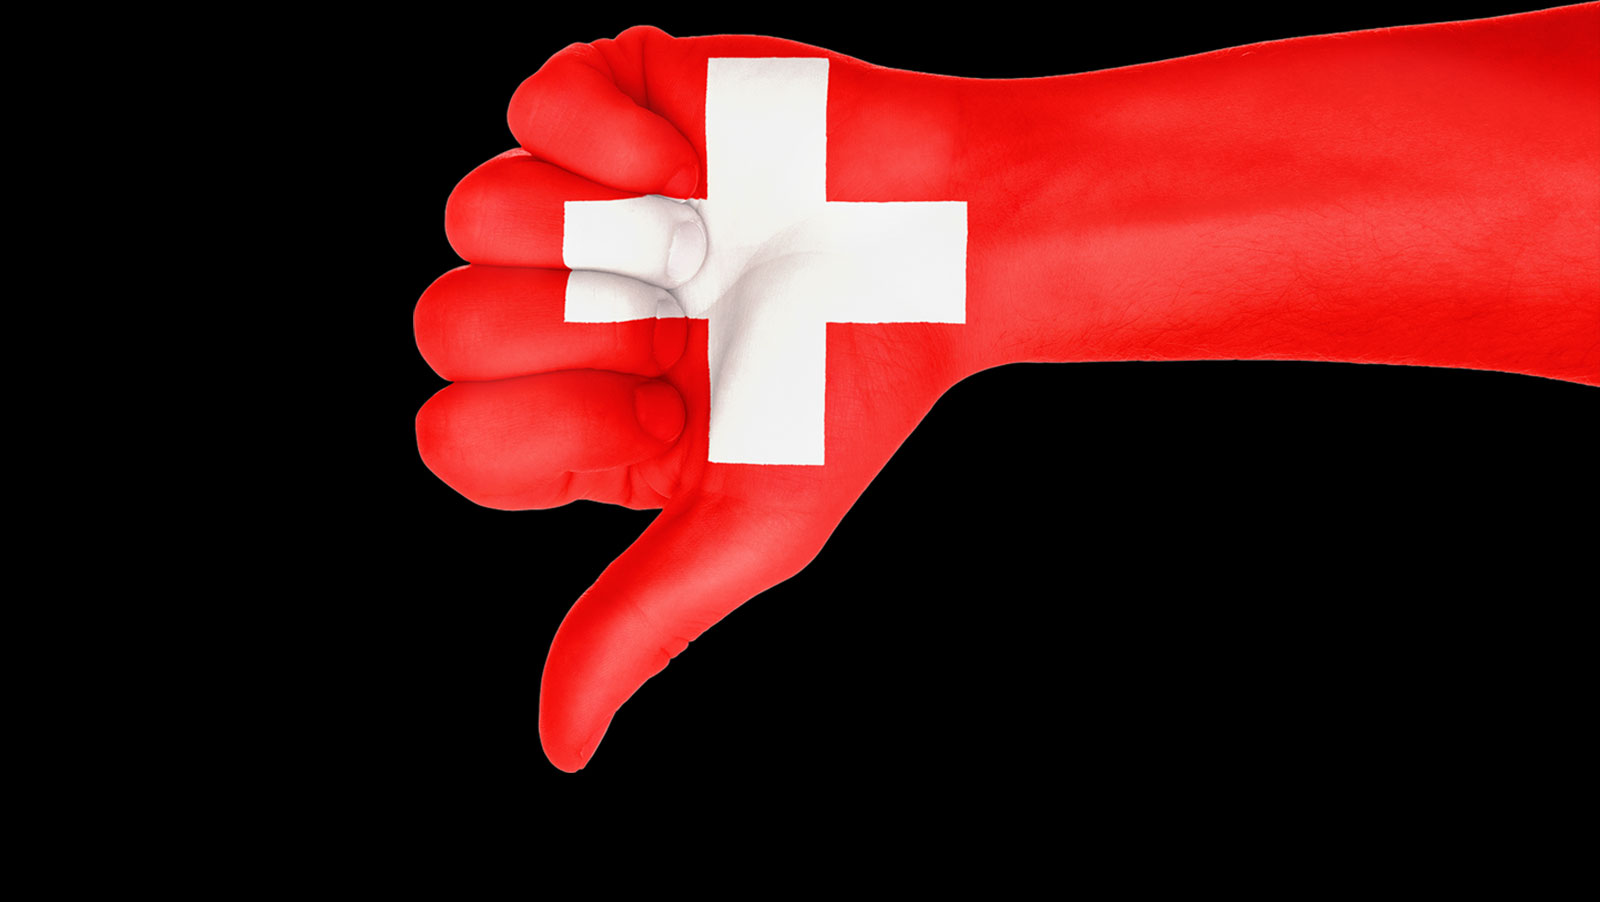 William Hill to no longer accept Swiss wagers, cancels existing bets